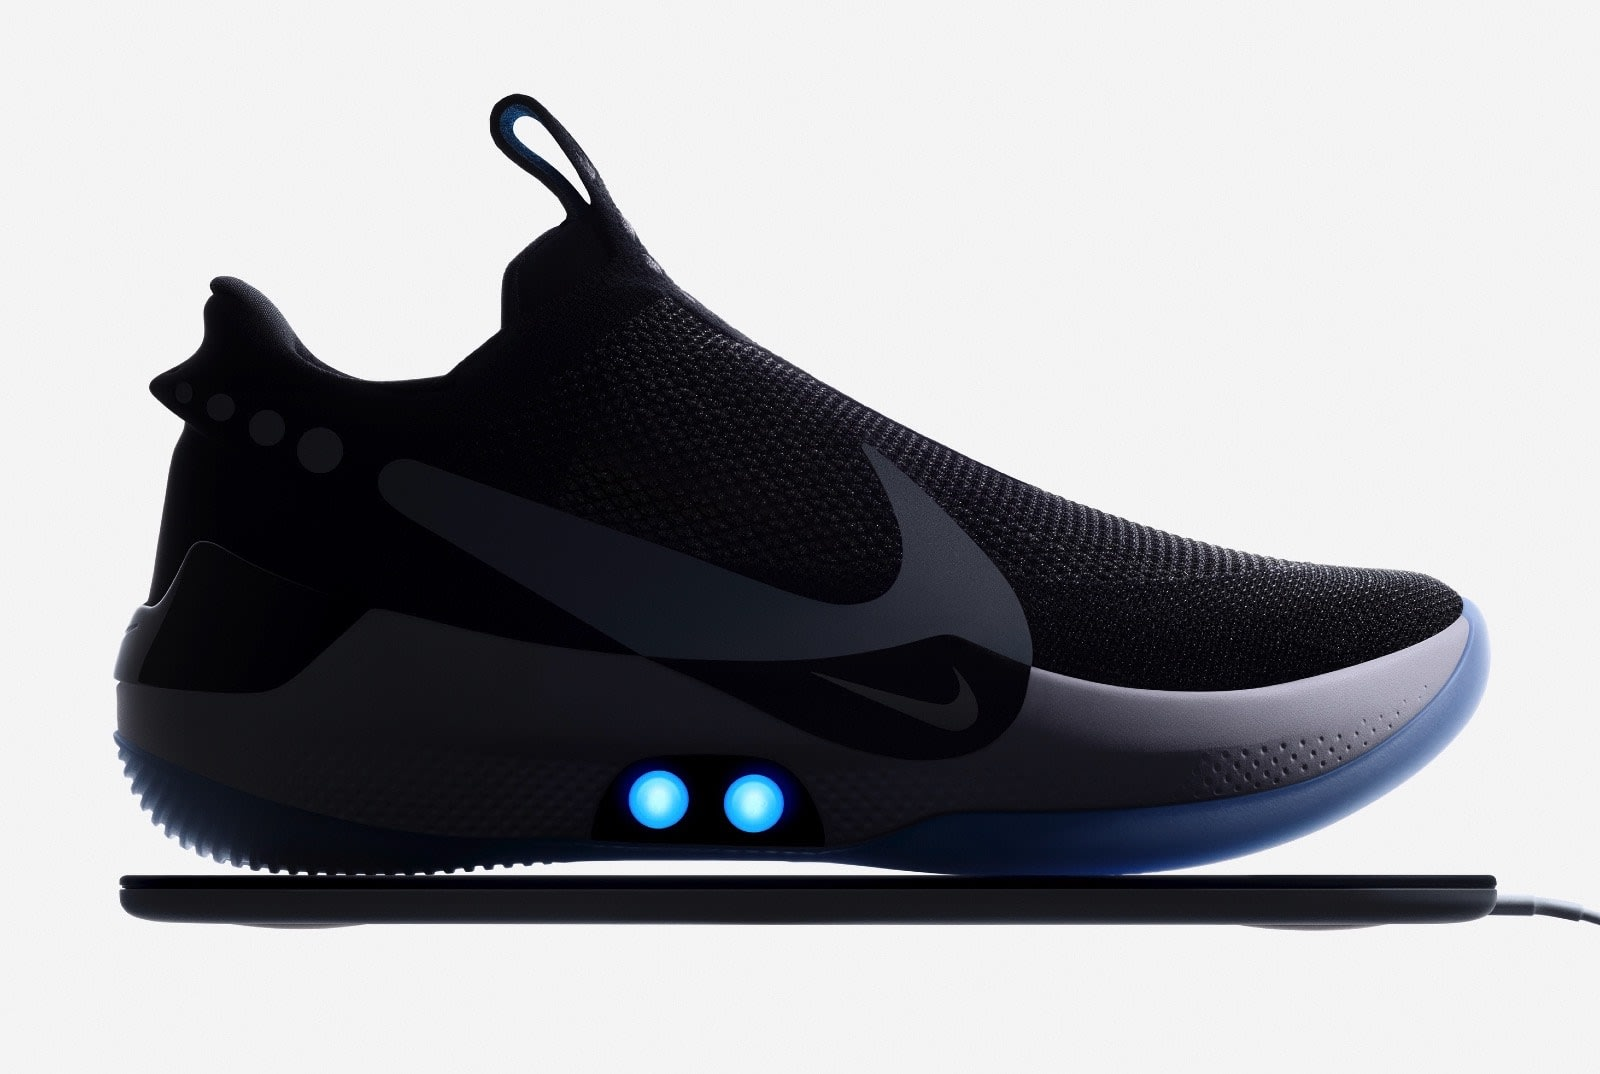 Nike's Adapt BB is an app-controlled, self-lacing